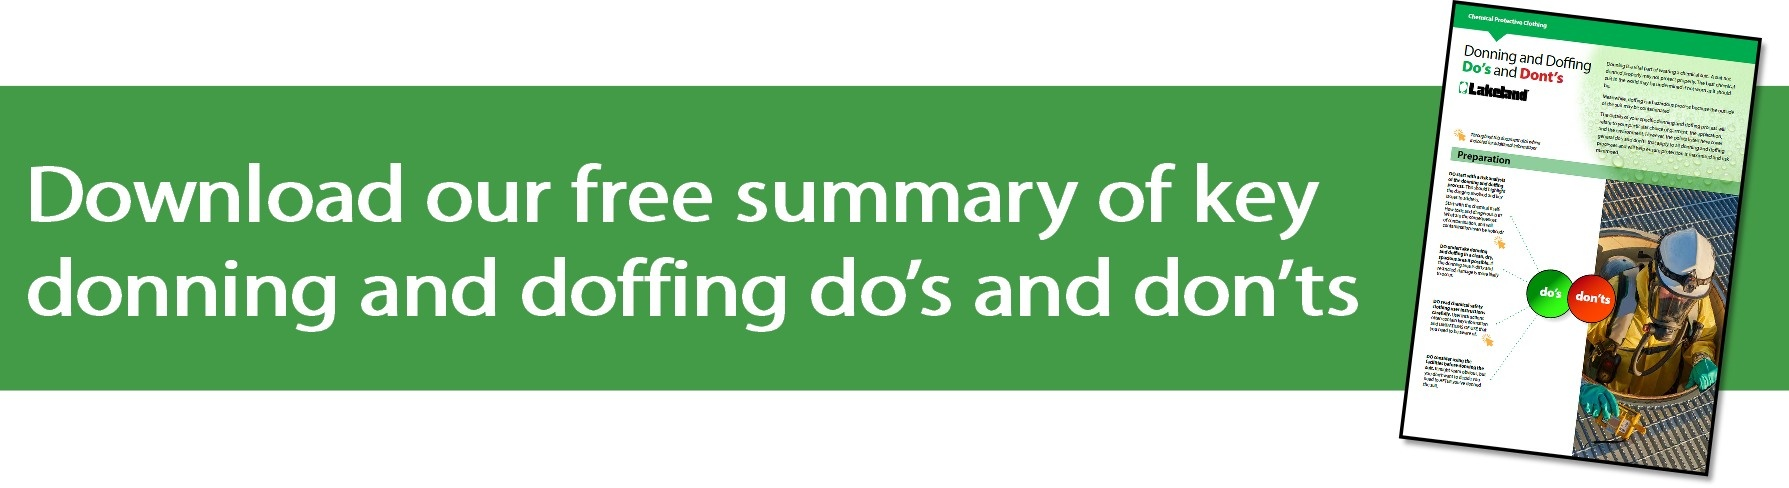 Download a free guide to donning and doffing do's and don'ts